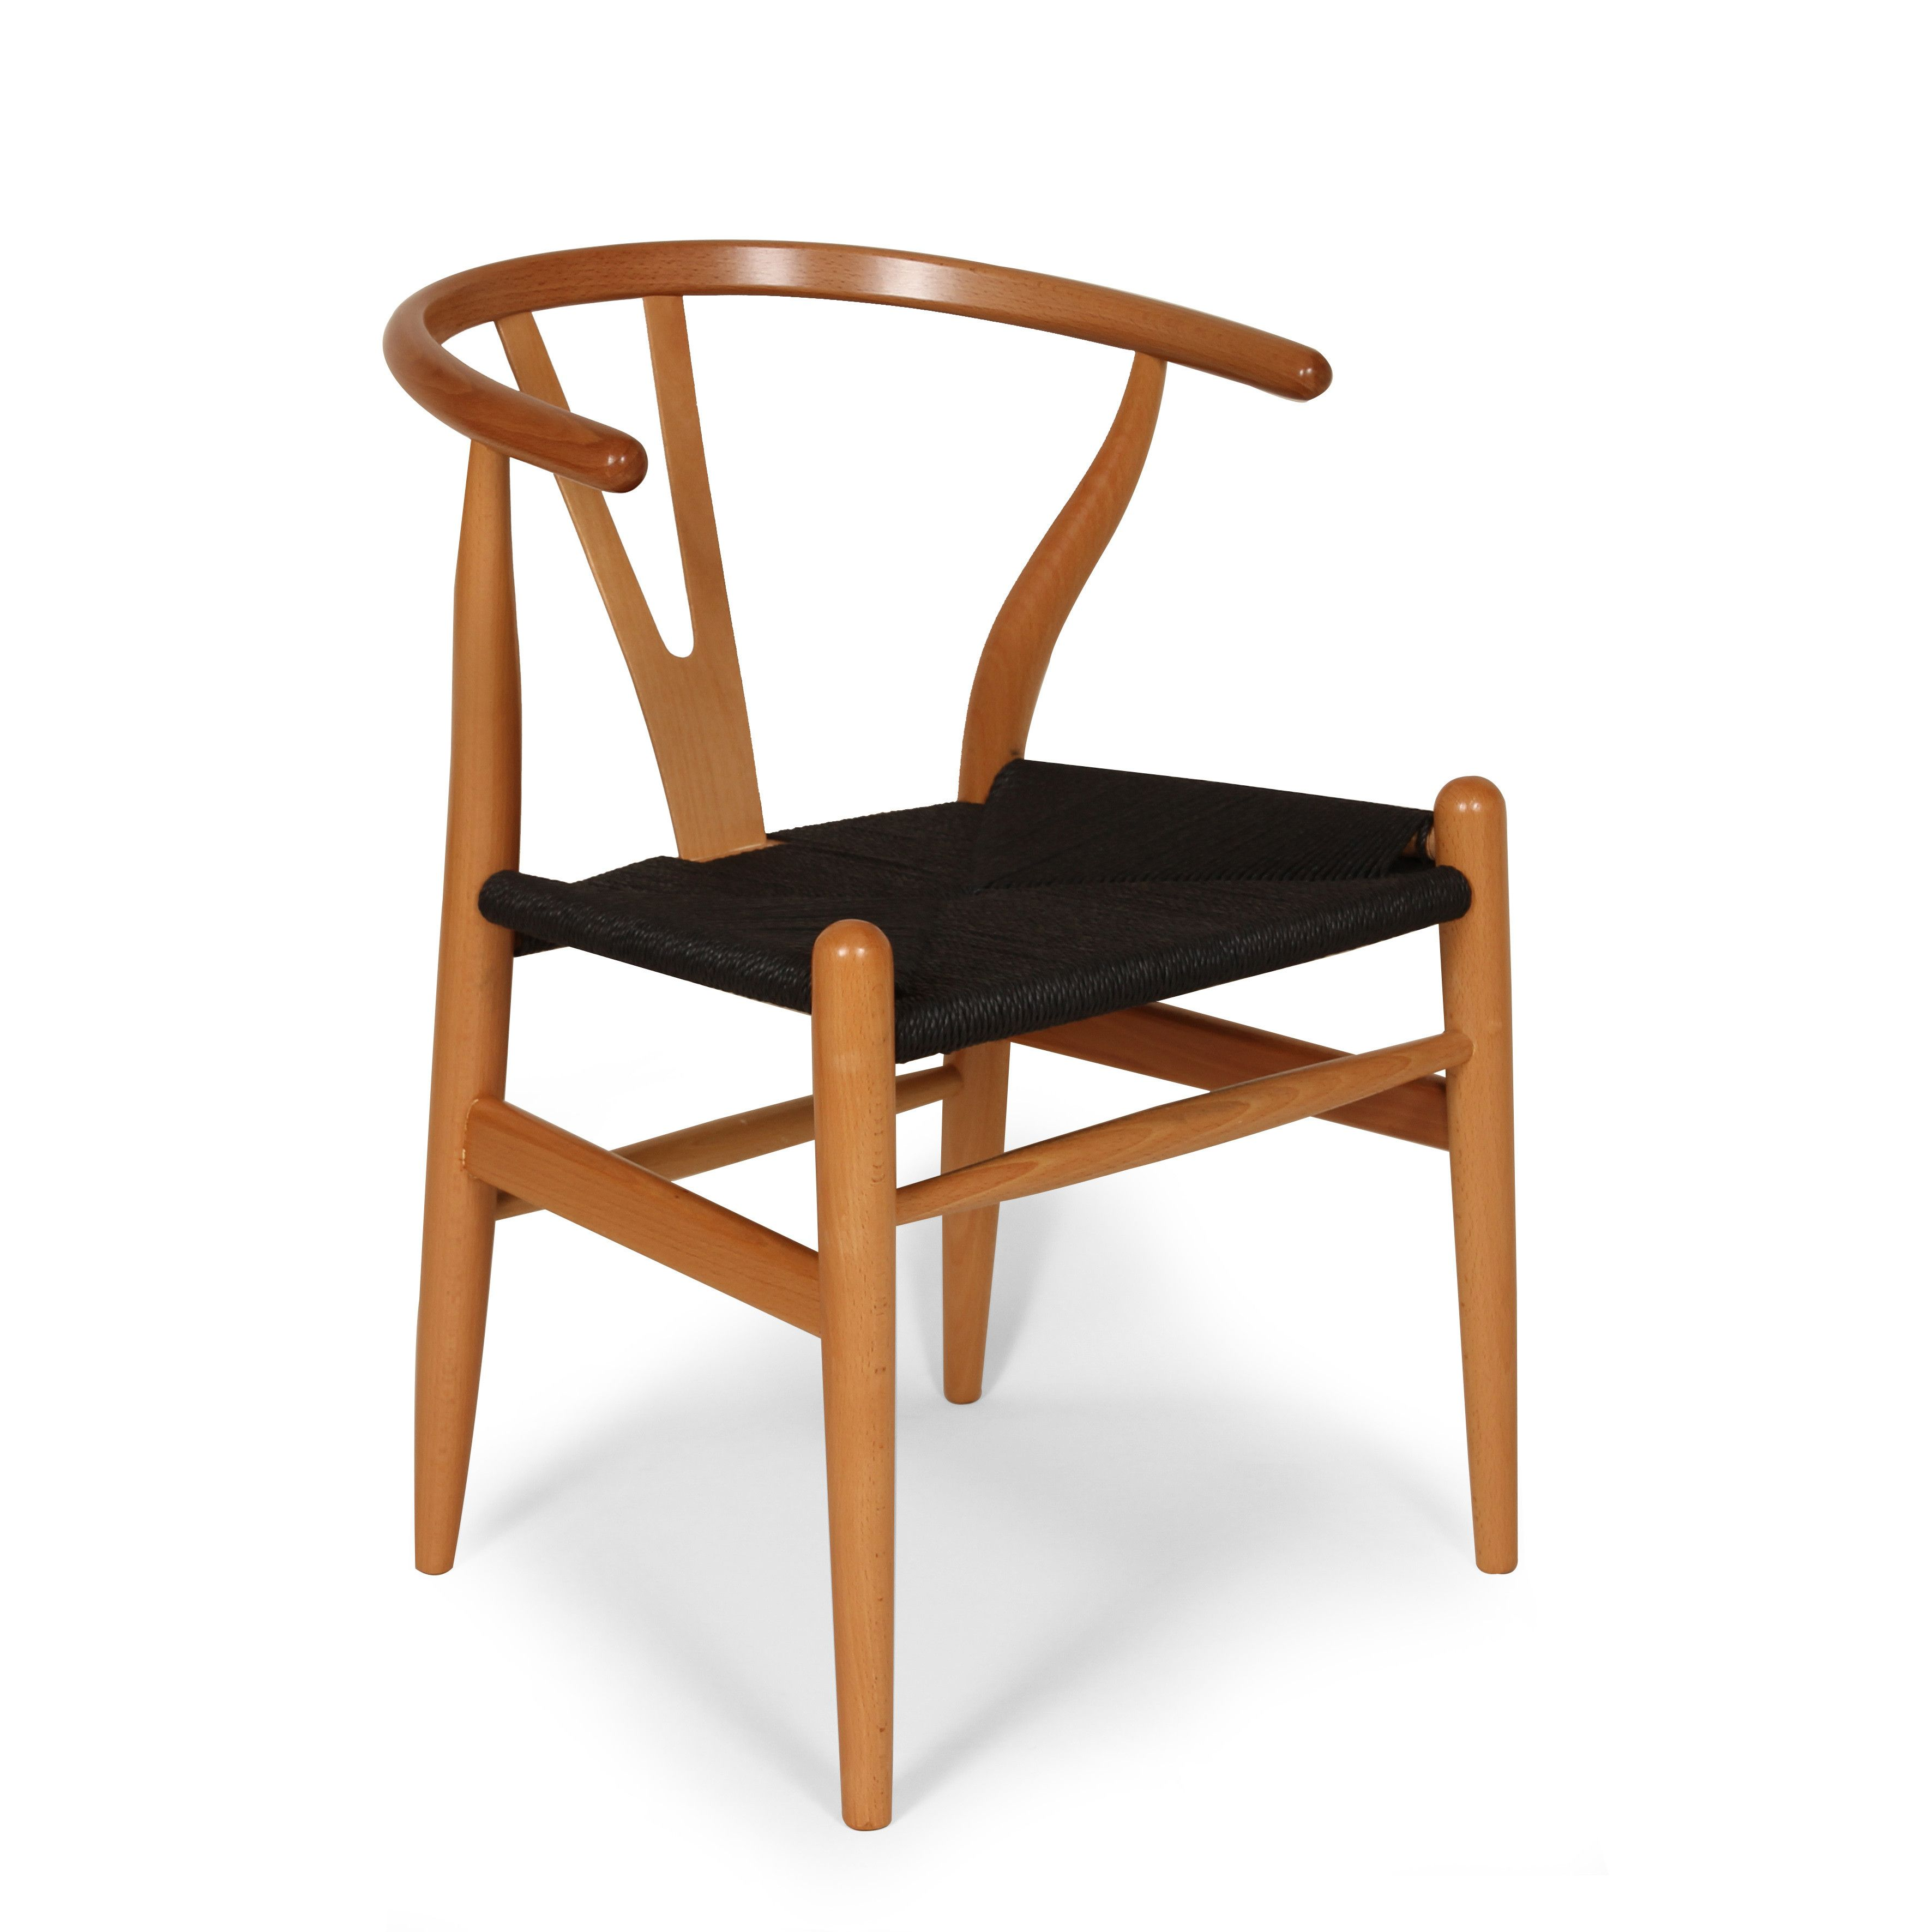 189 MidCentury Modern Reproduction CH24 Wishbone Y Chair